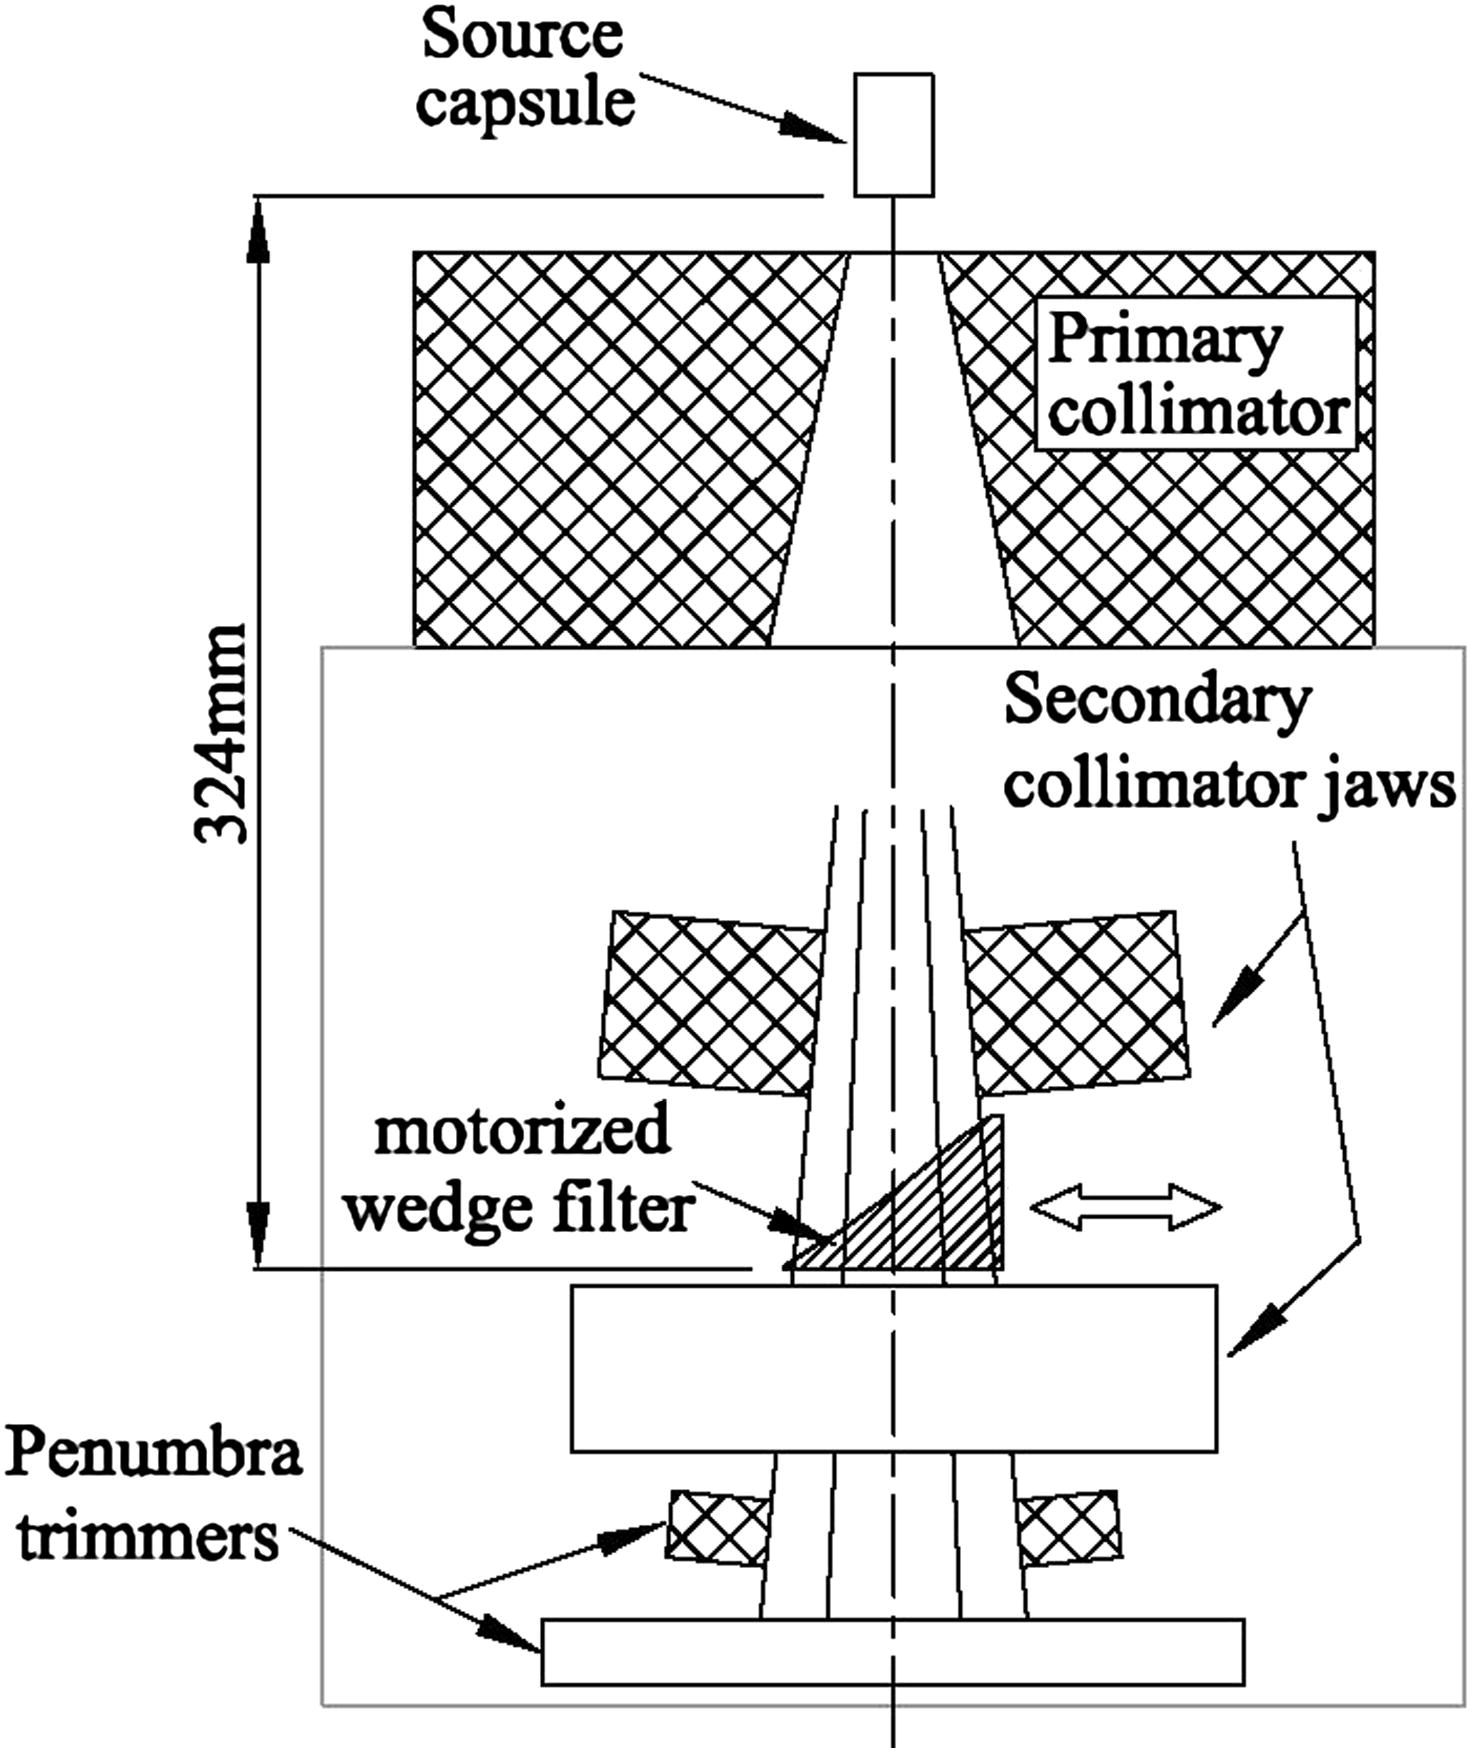 Design Implementation And Validation Of A Motorized Wedge